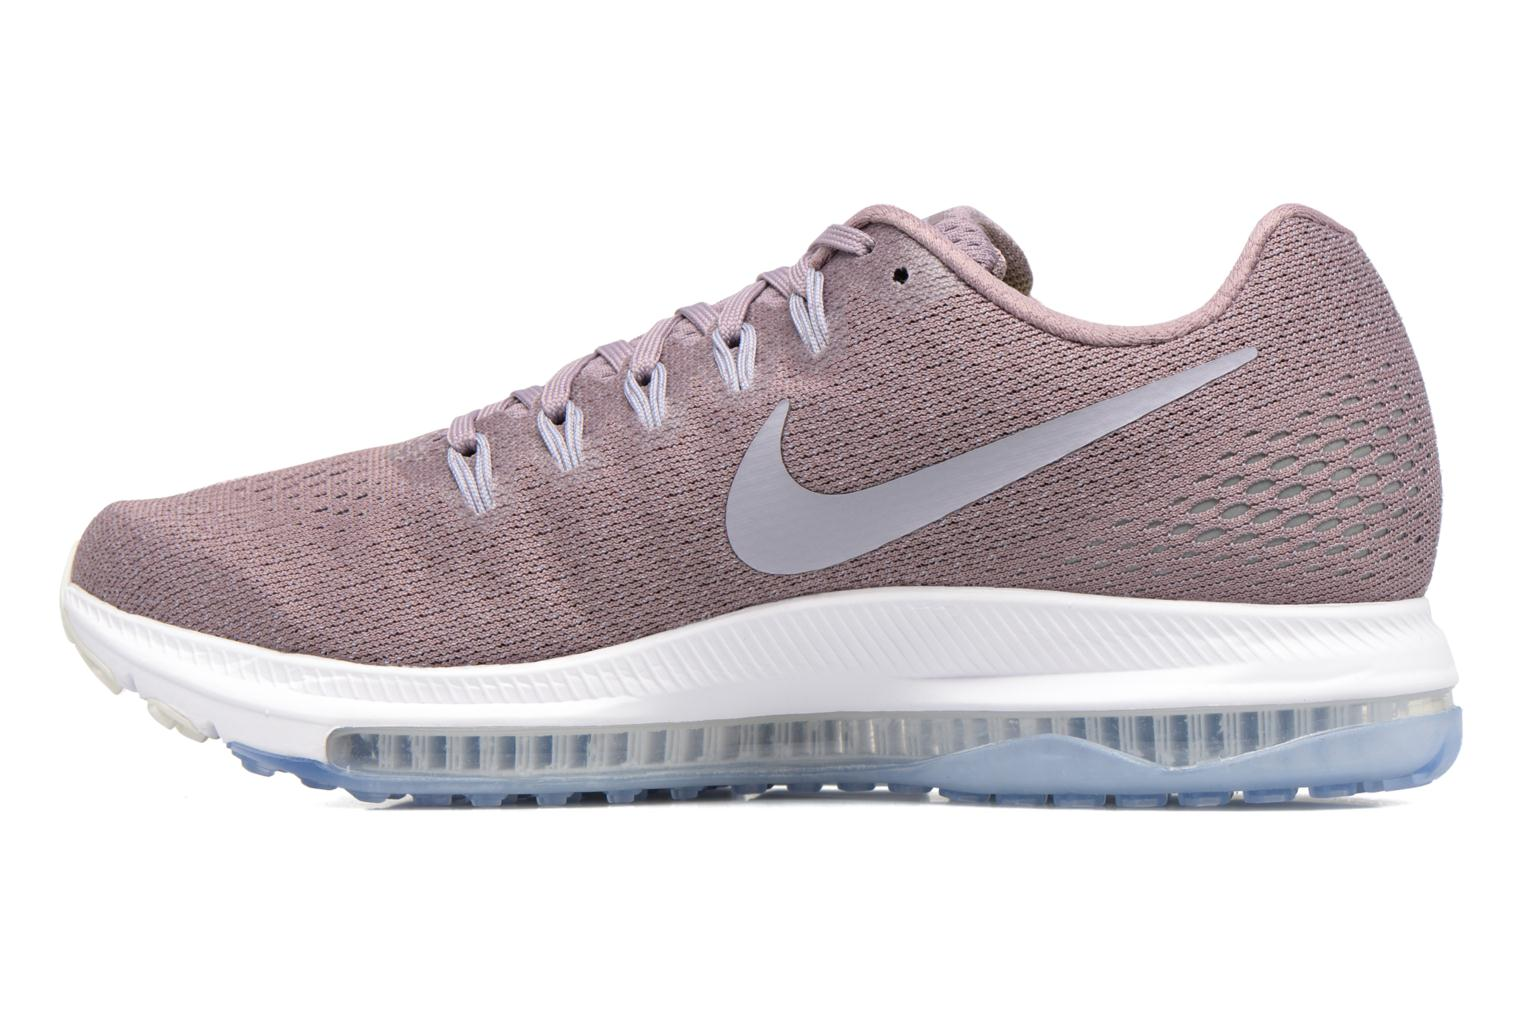 Zapatillas de deporte Nike Wmns Nike Zoom All Out Low Violeta      vista de frente